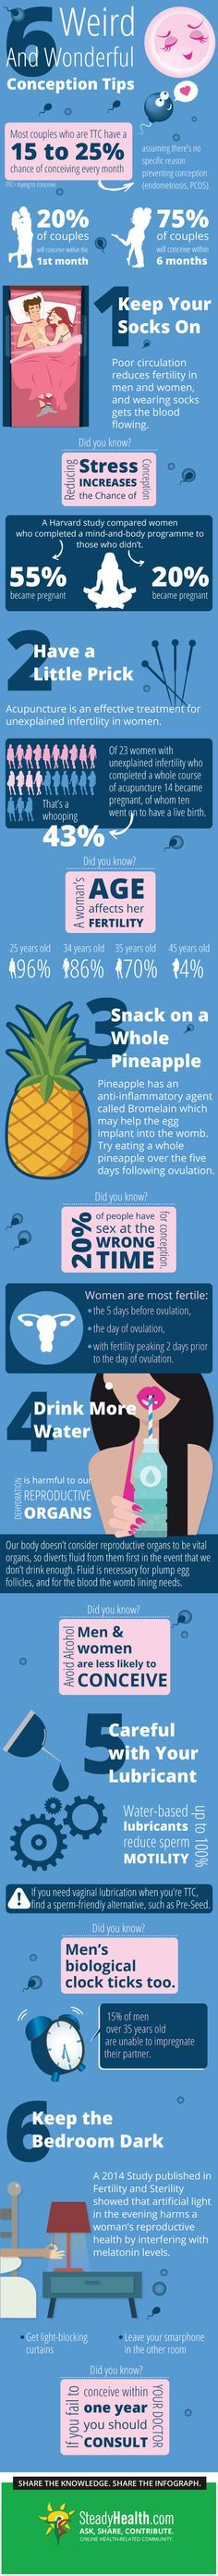 pproximately half of all couples who struggle with infertility do so because of a problem with the man's fertility with low sperm count being the most common cause of male infertility.